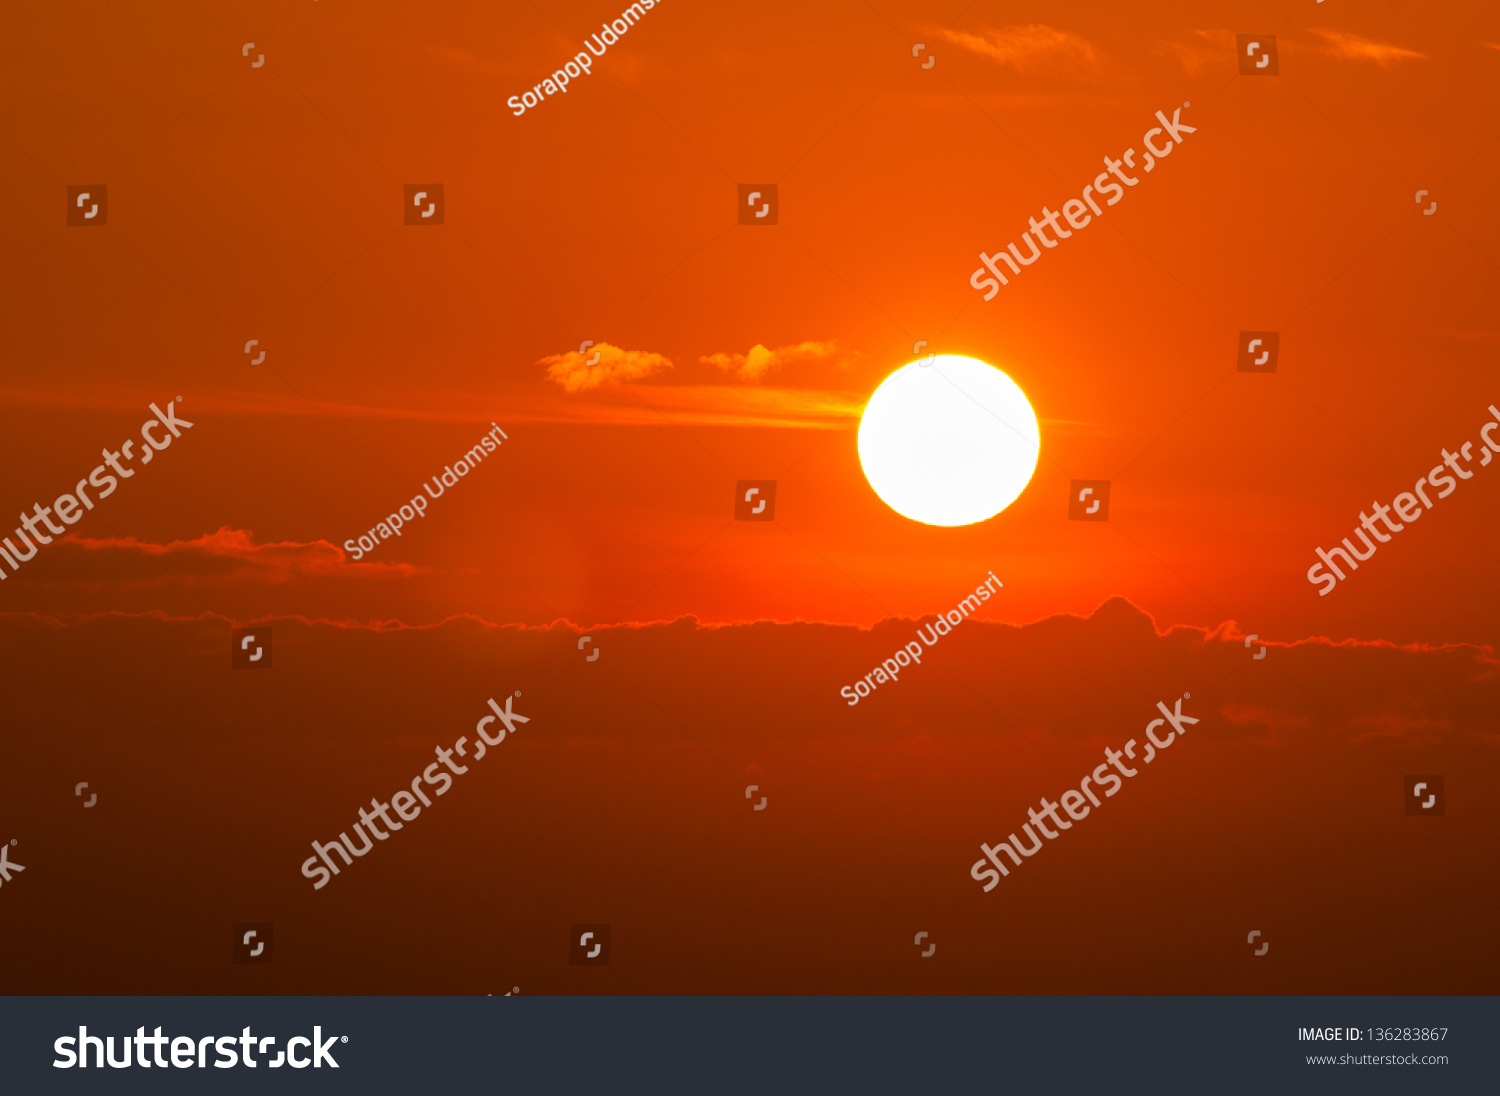 sunrise big and beautiful singles Where are the marshall islands sunrise your pictures are just beautiful and capture the at roi when we first coppied msgs about this big bomb that was.